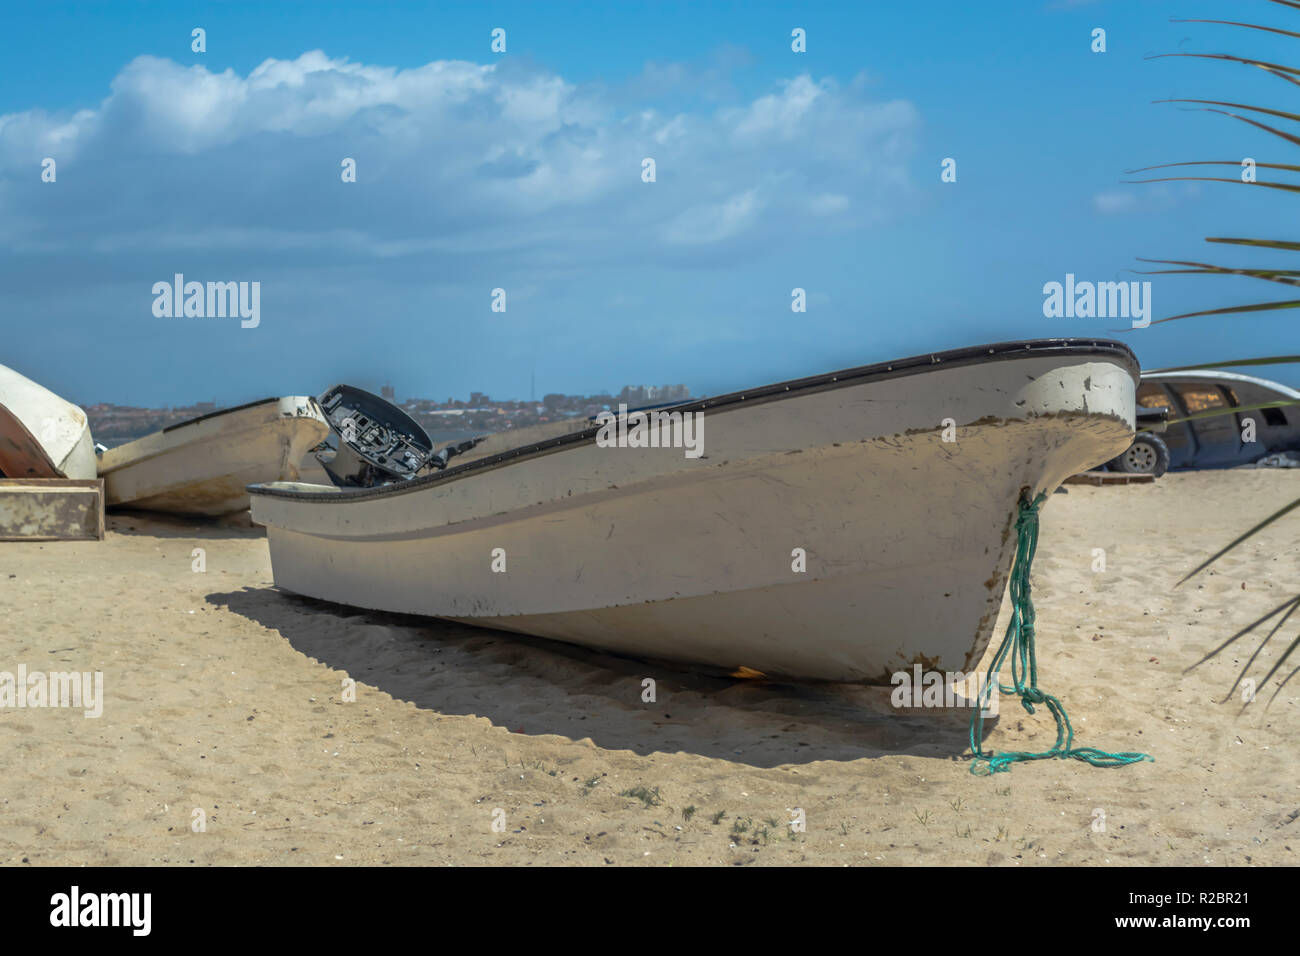 View of a broken fisherman's boat on a fisherman's beach, Mussulo island, Angola - Stock Image